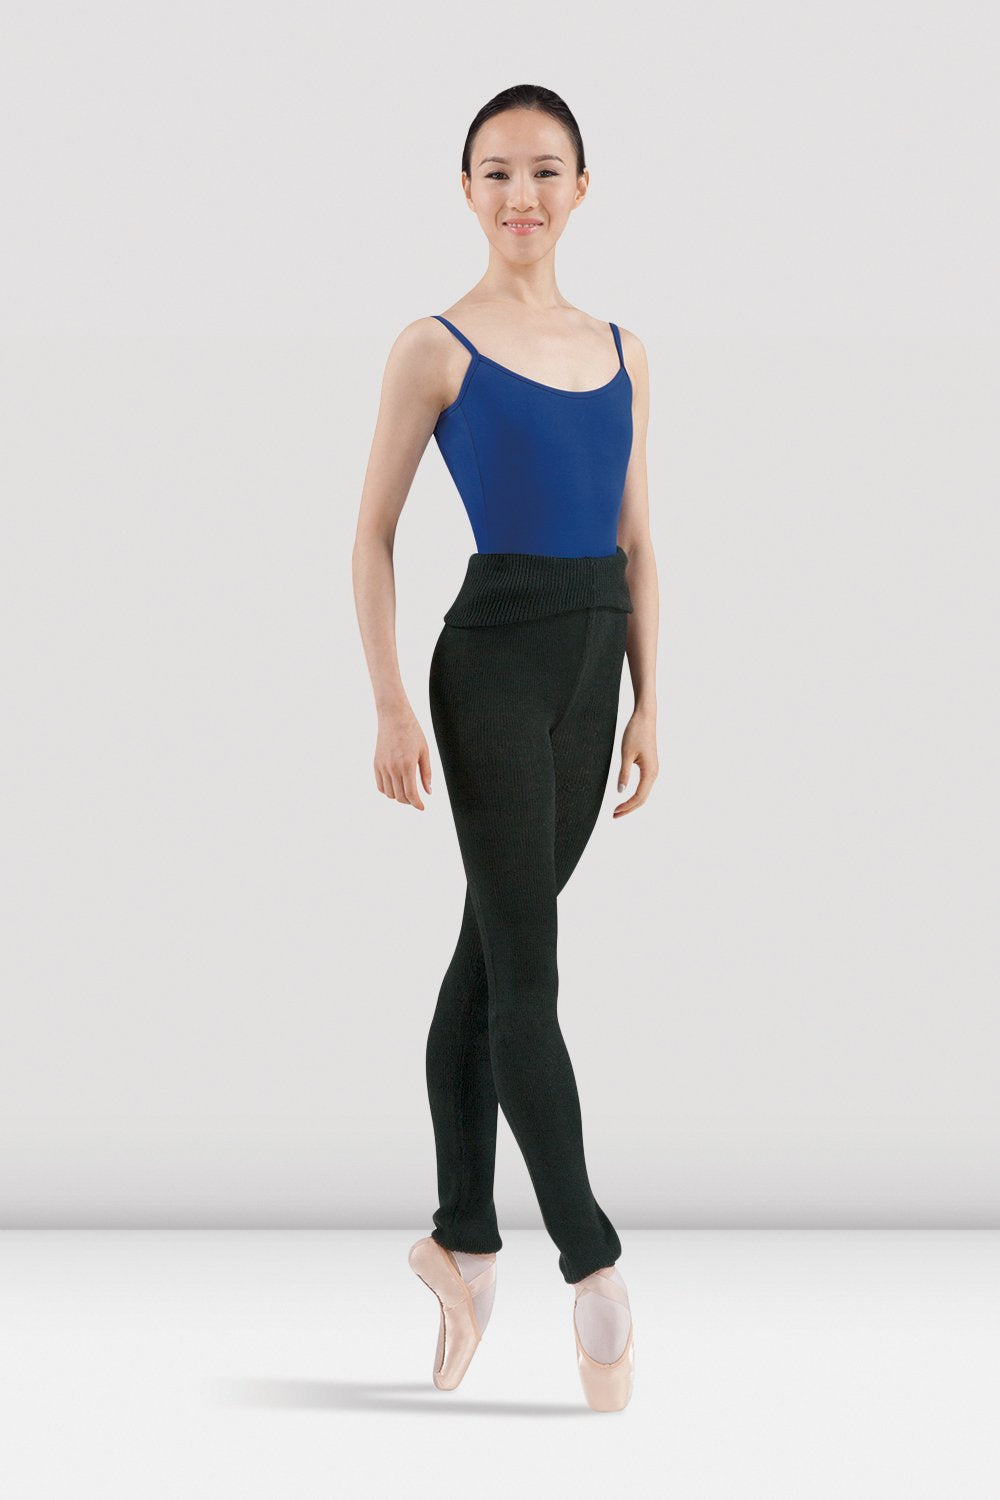 Ladies Marcie Warm Up Roll Over Pant - BLOCH US